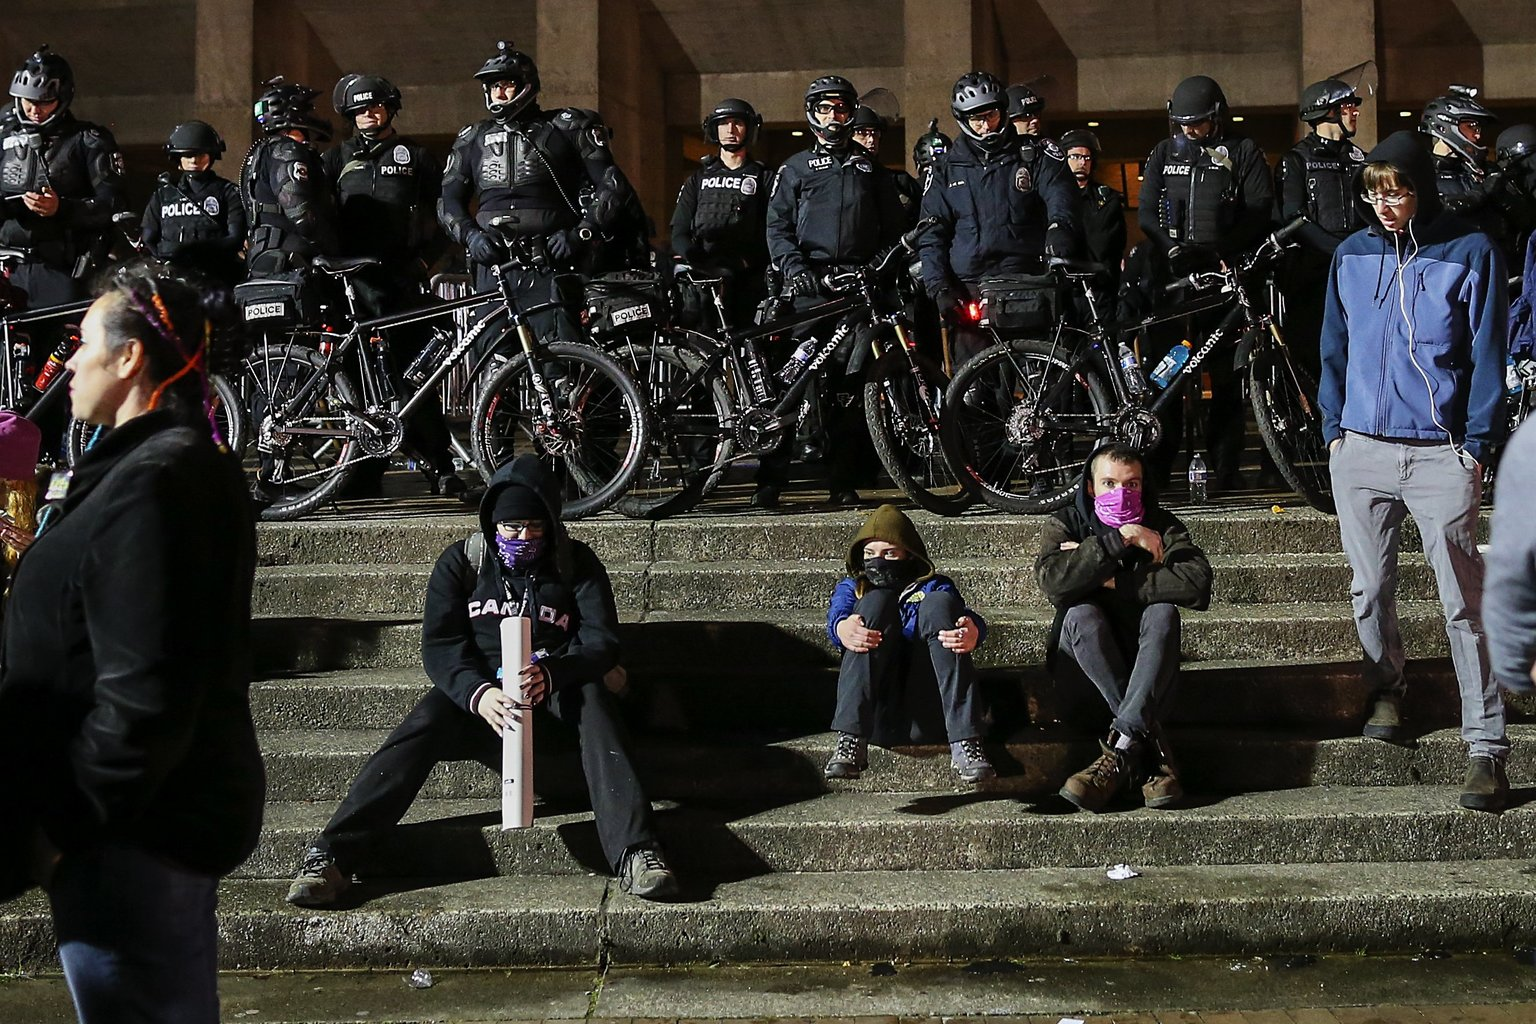 College Republicans threaten to sue UW over $17,000 security fee for Saturday rally -